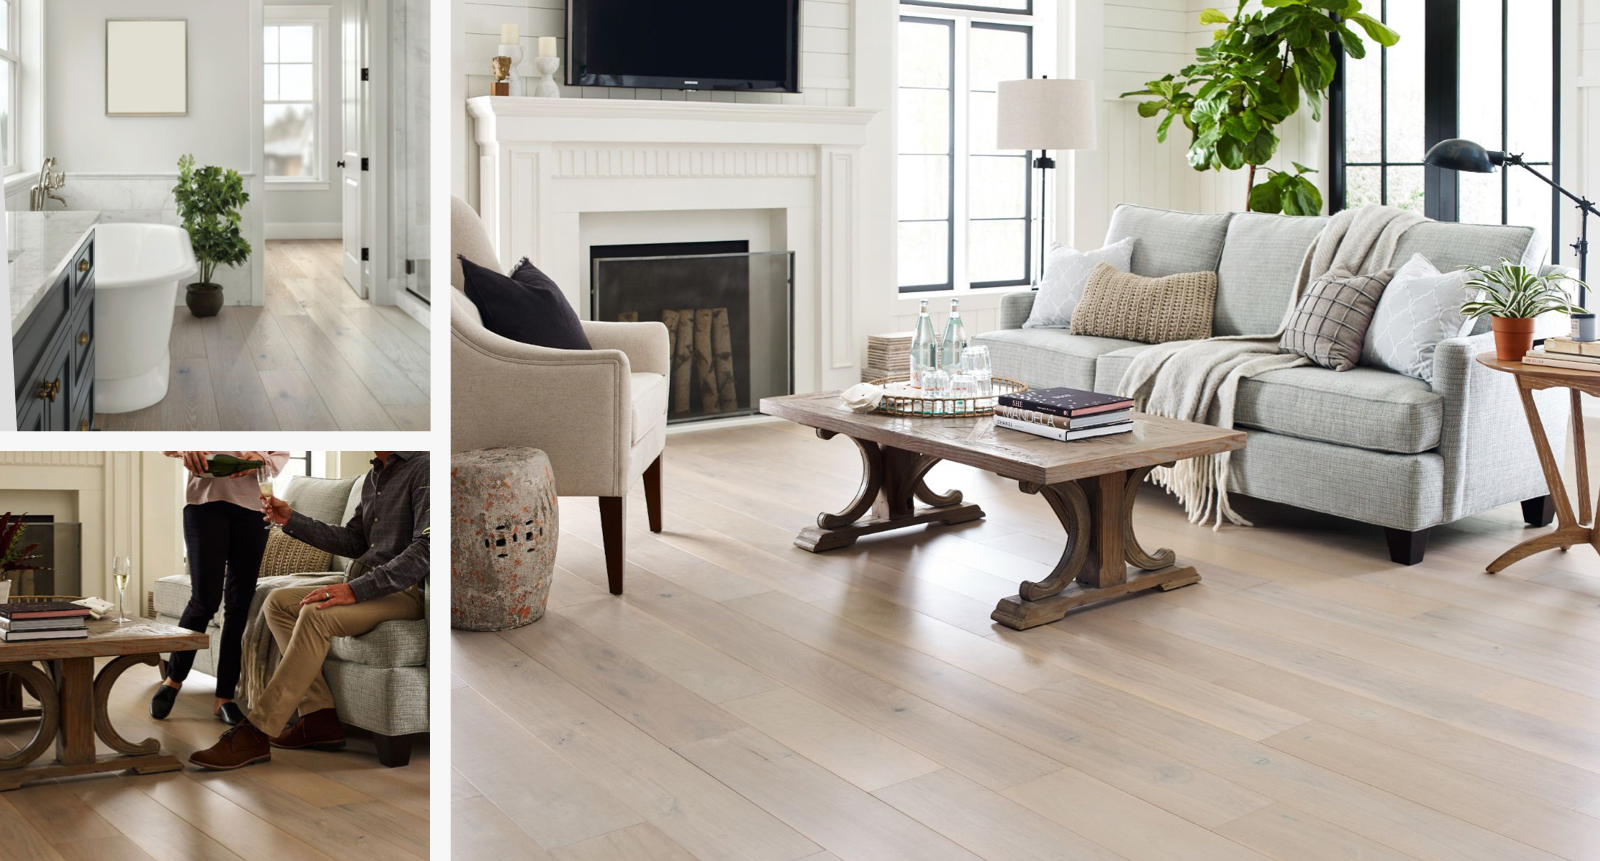 Floorte waterproof hardwood flooring for your home | Kimi's Carpet Plus, INC